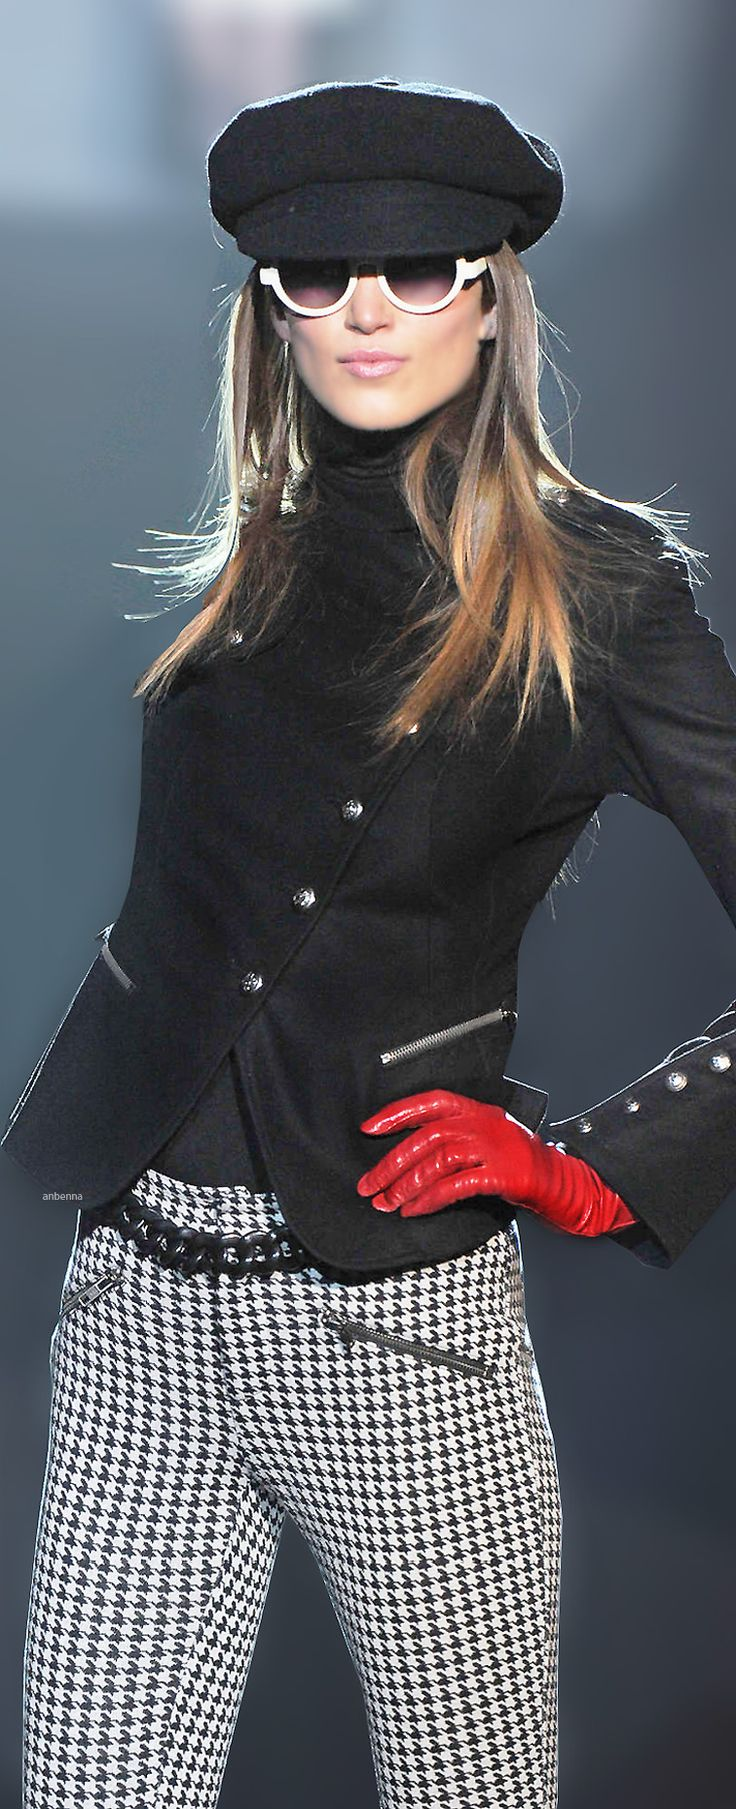 Betsey Johnson~I love the whole outfit especially the houndstooth trousers and Sargent Pepper's jacket!